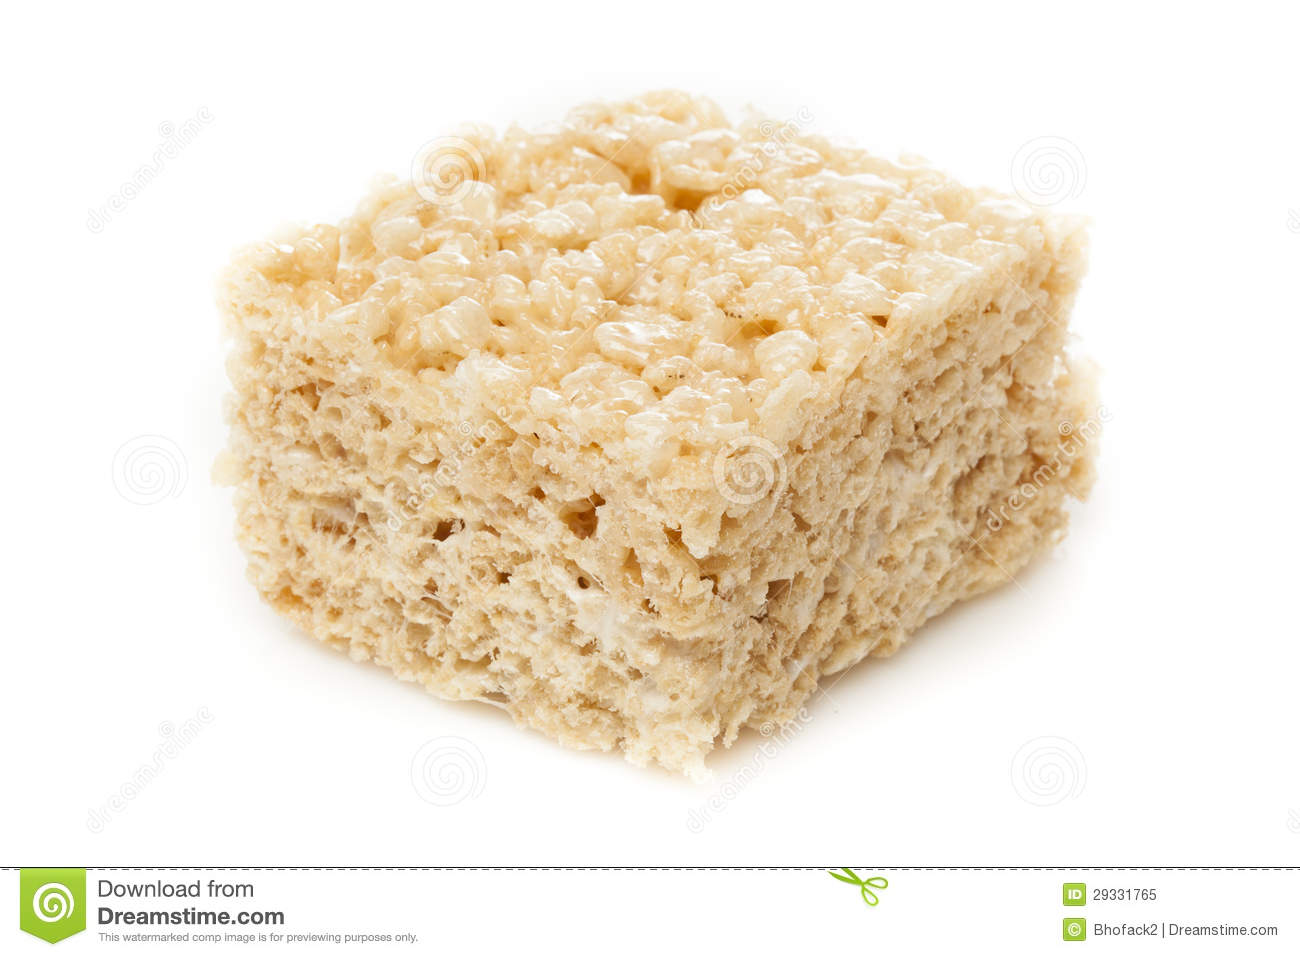 Rice krispie treat clipart.